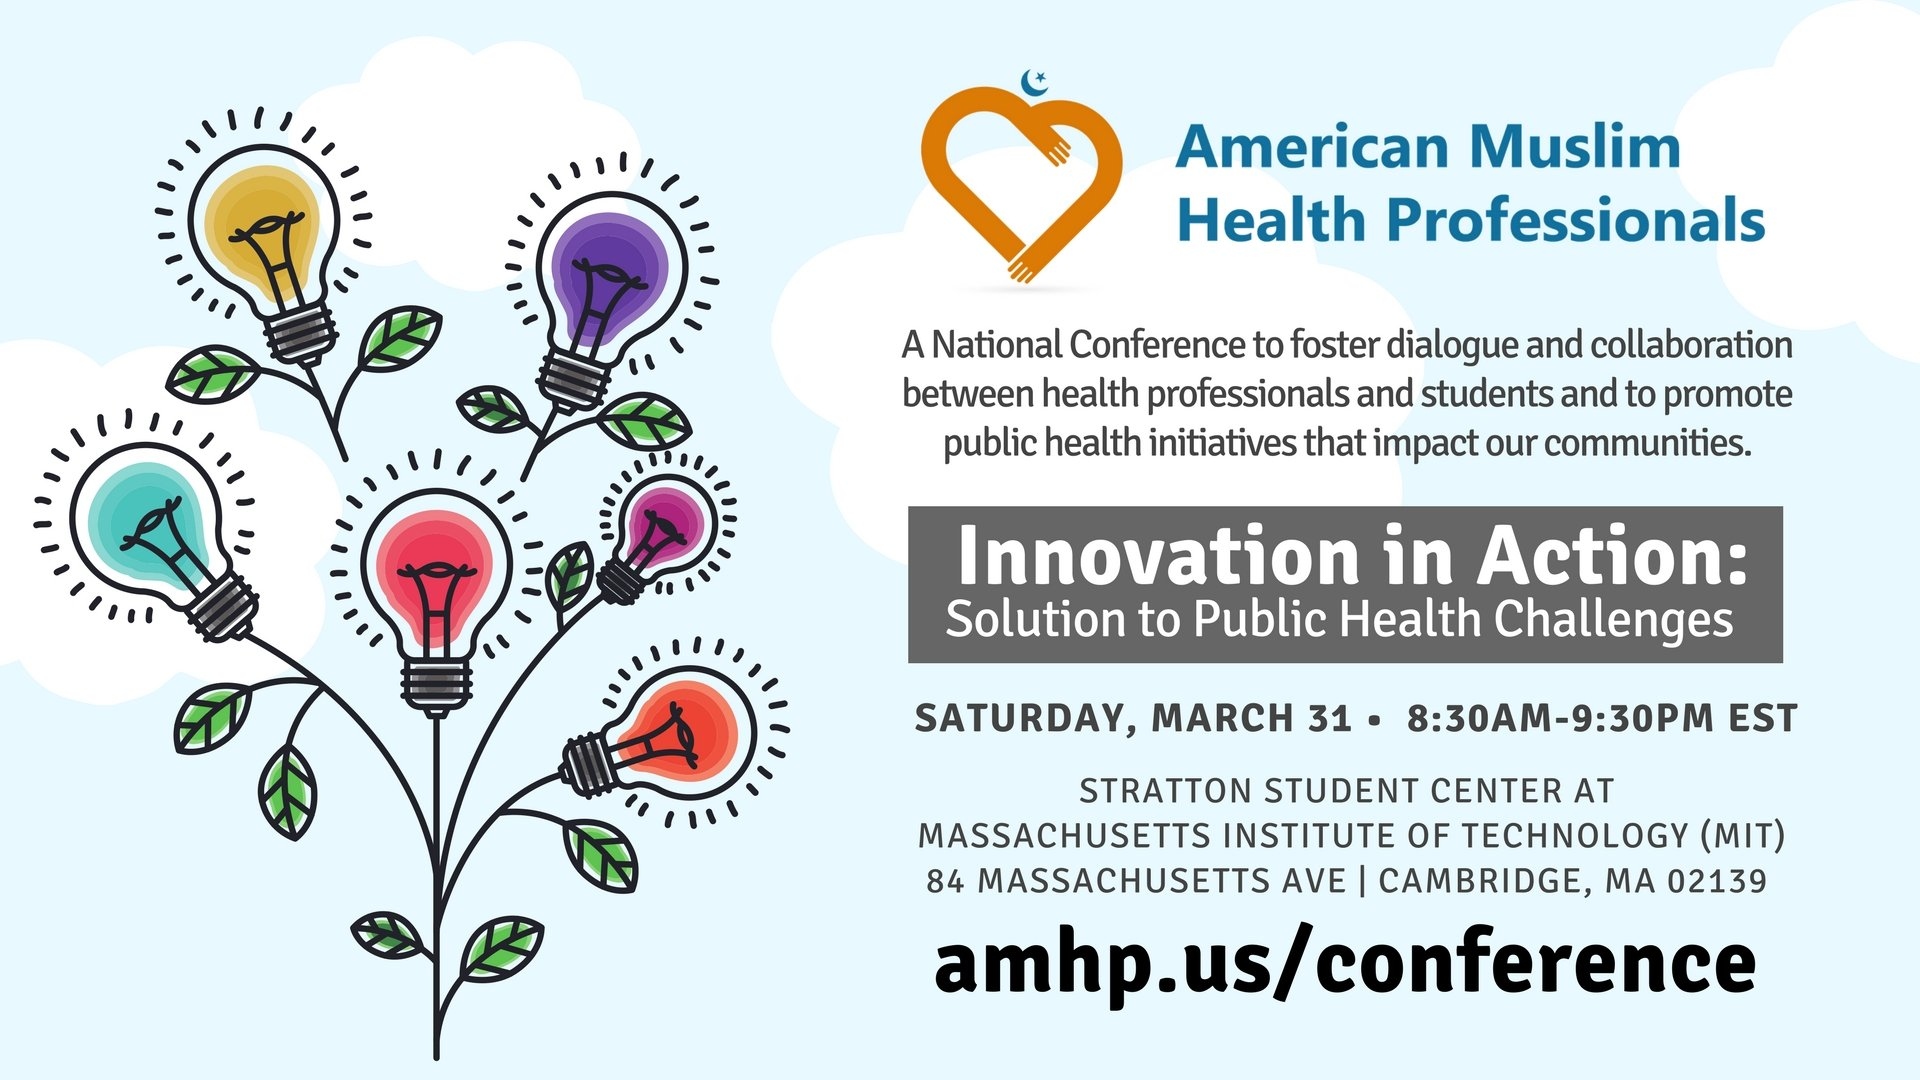 Amhp National Conferenceamhp Board2018 03 30t19 49 02 00